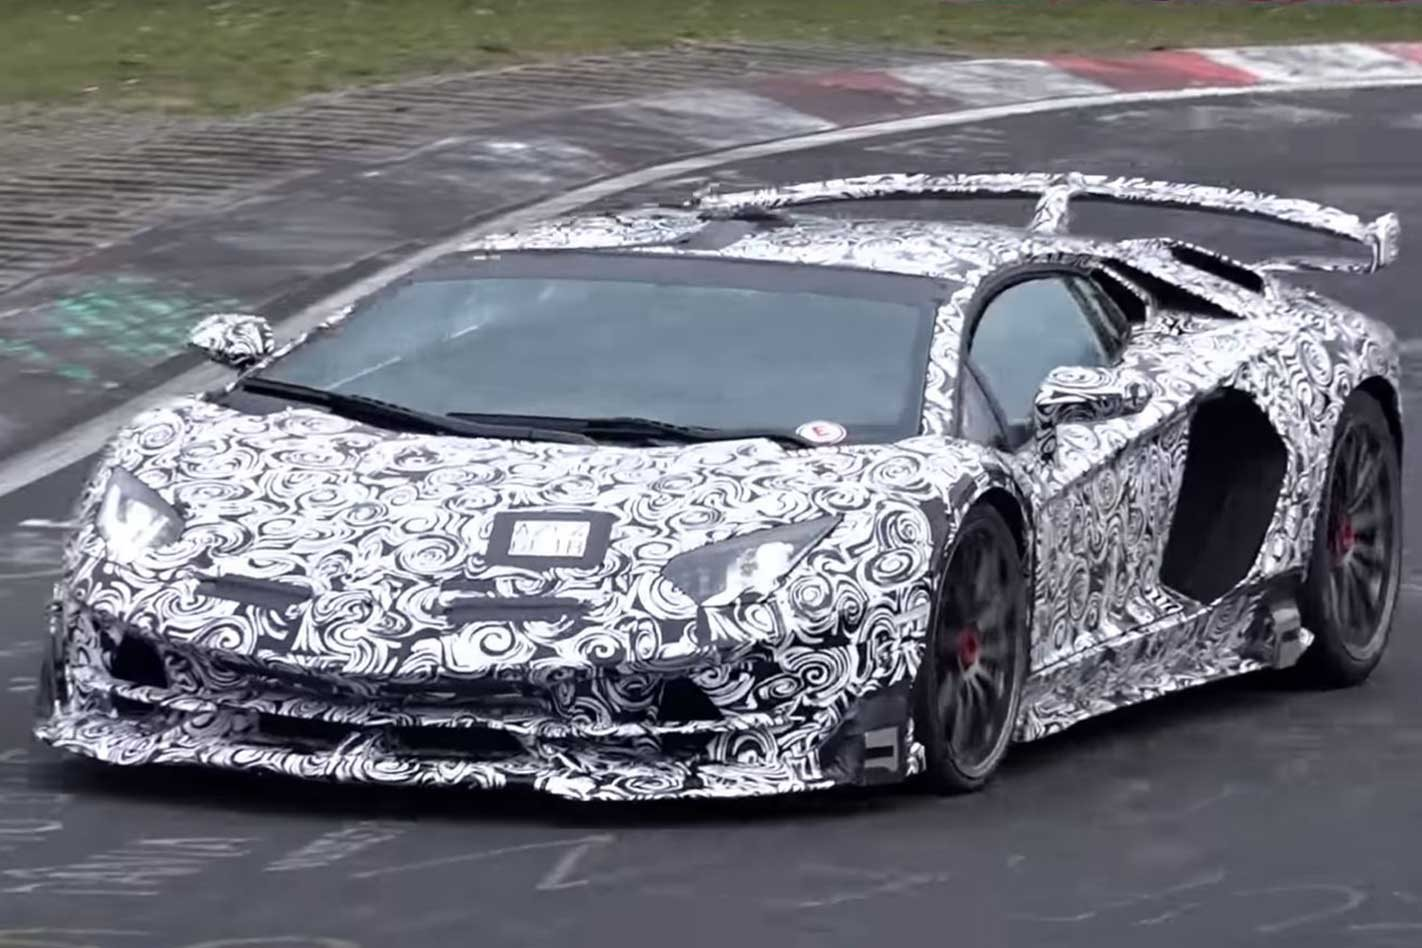 Lamborghini Aventador SVJ could break Nurburgring lap record